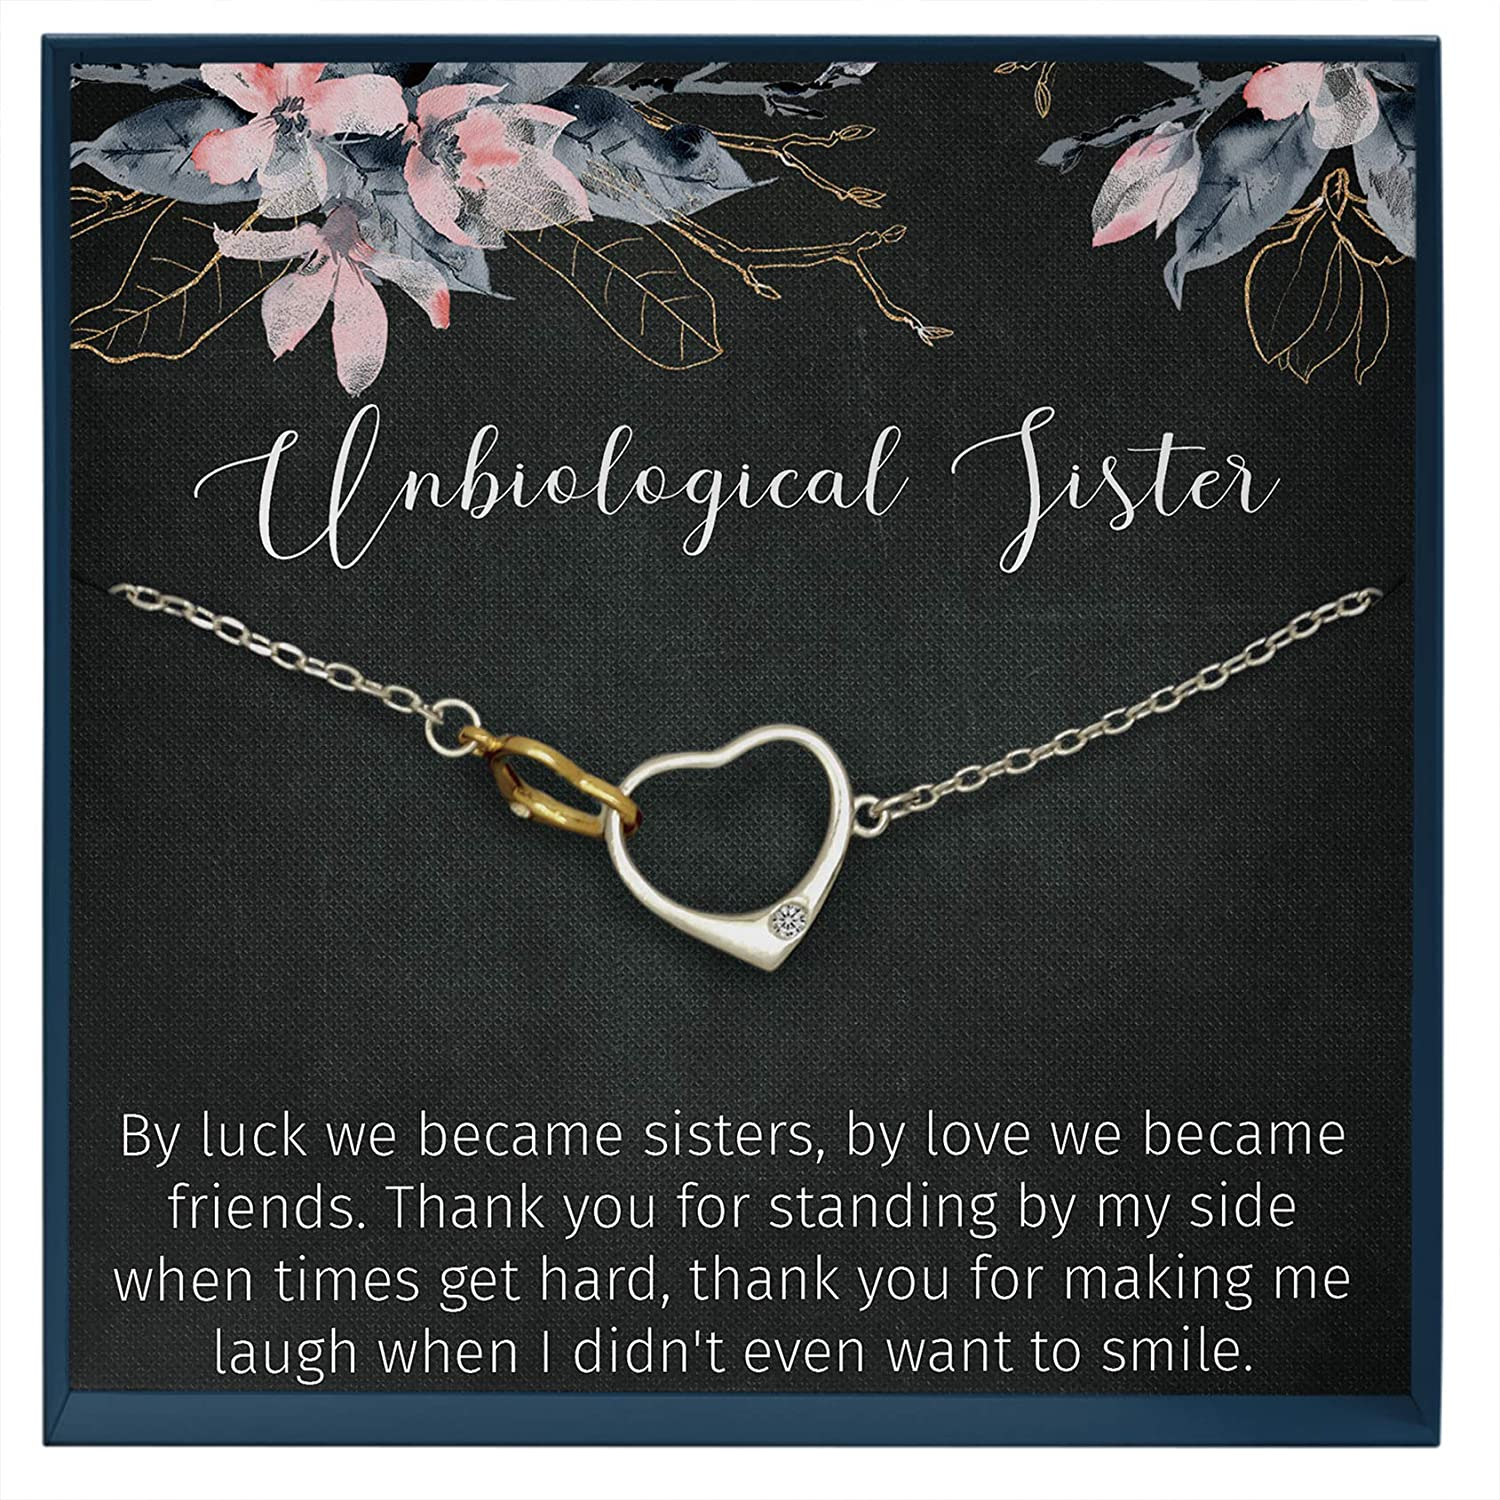 Soul Sister Bridesmaid Gift Sorority Necklace Muse Infinite Unbiological Sister Gift Best Friend Necklace